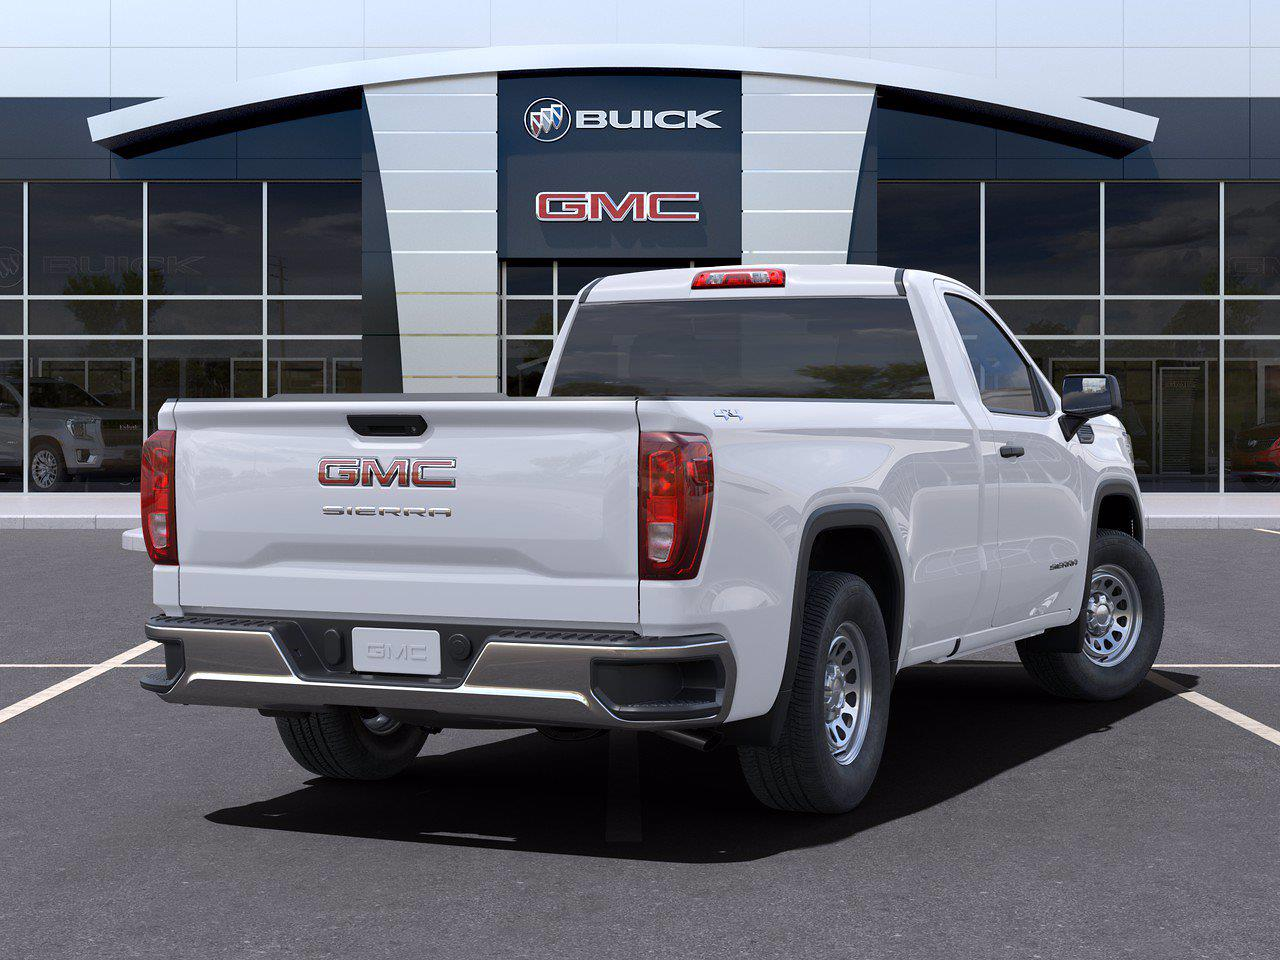 2021 GMC Sierra 1500 Regular Cab 4x4, Pickup #416065 - photo 2